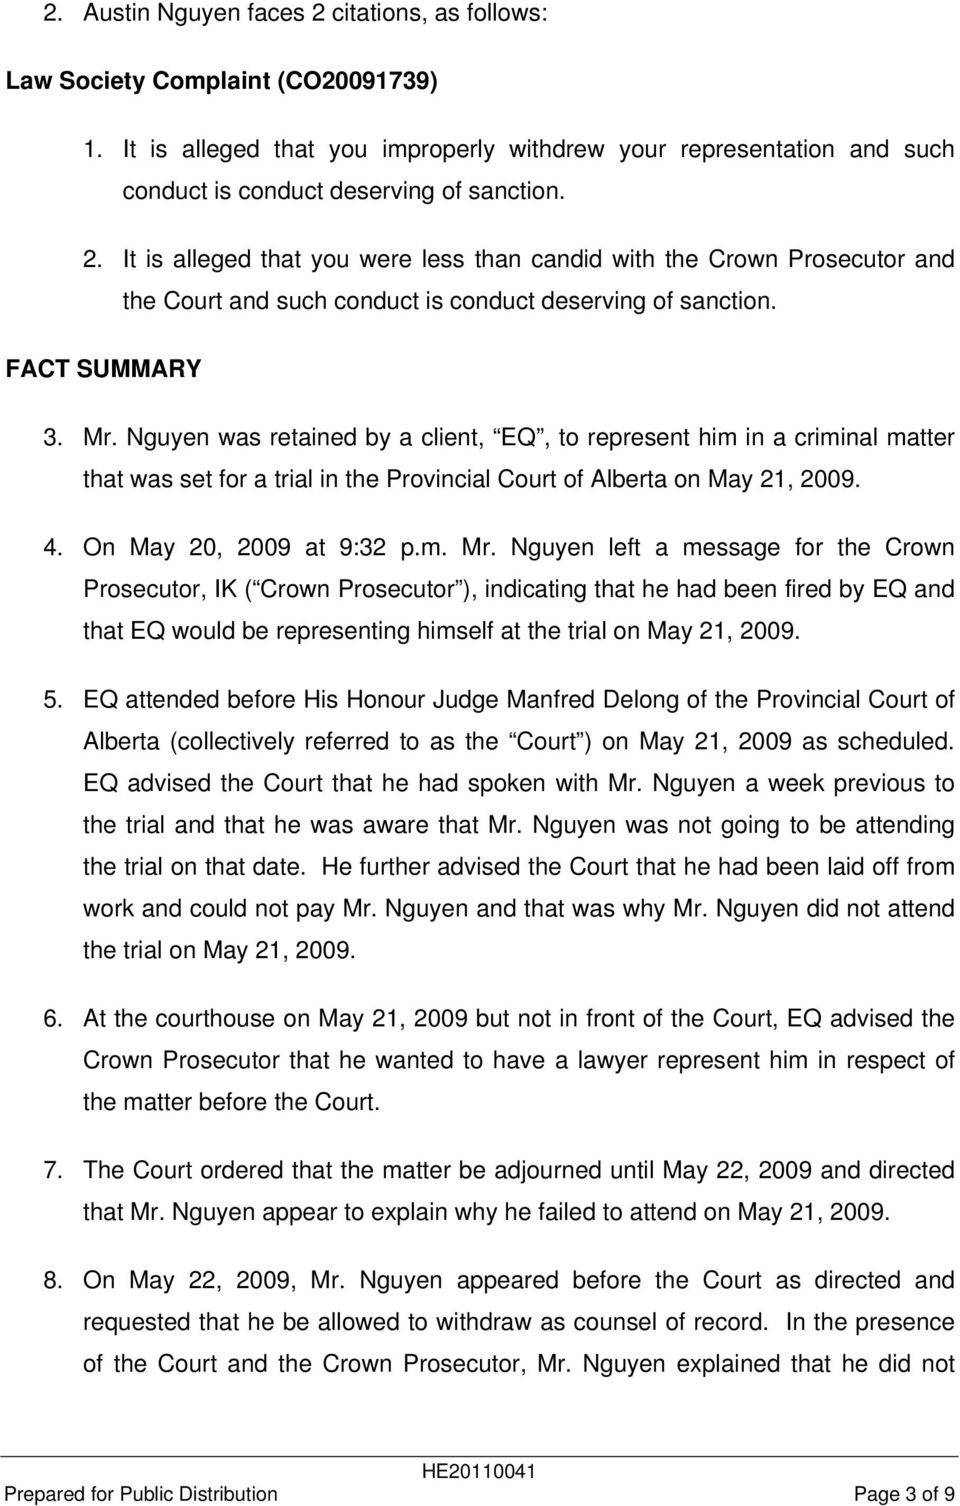 Nguyen was retained by a client, EQ, to represent him in a criminal matter that was set for a trial in the Provincial Court of Alberta on May 21, 2009. 4. On May 20, 2009 at 9:32 p.m. Mr.